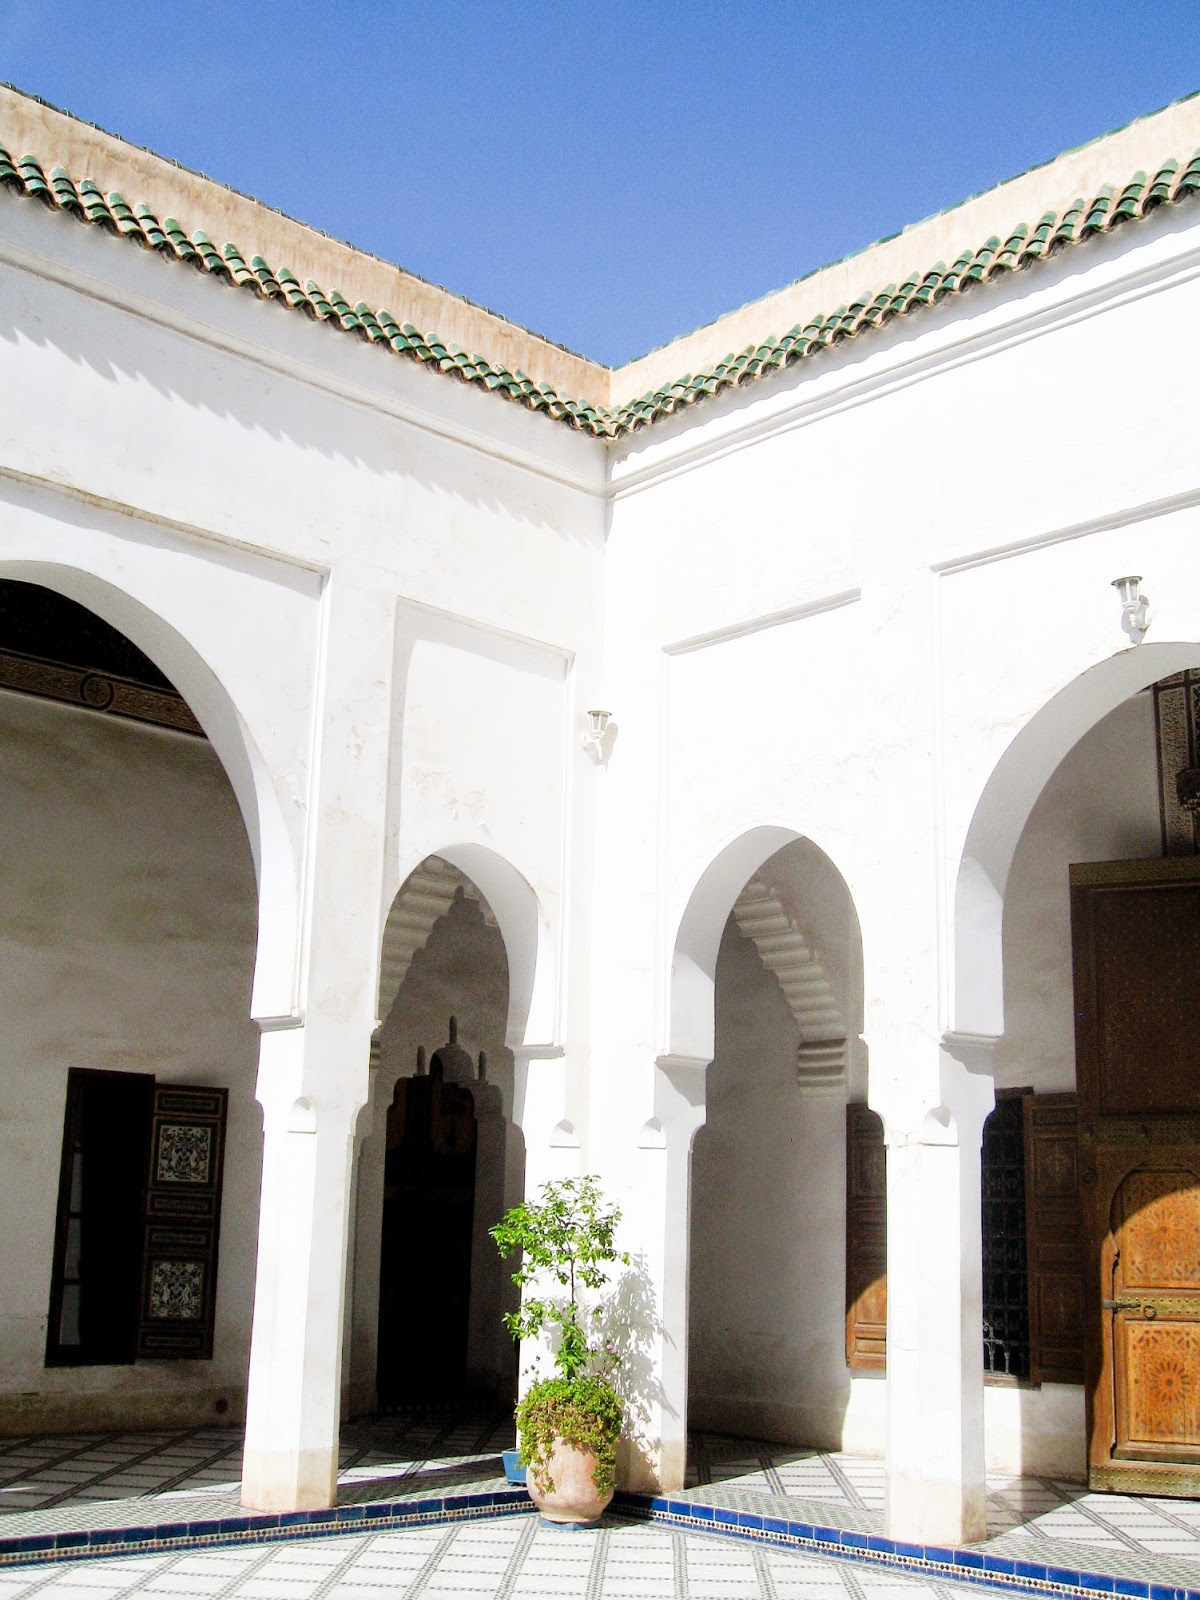 Top Marrakech tourist attractions: Minimalist moorish arches at Bahia Palace